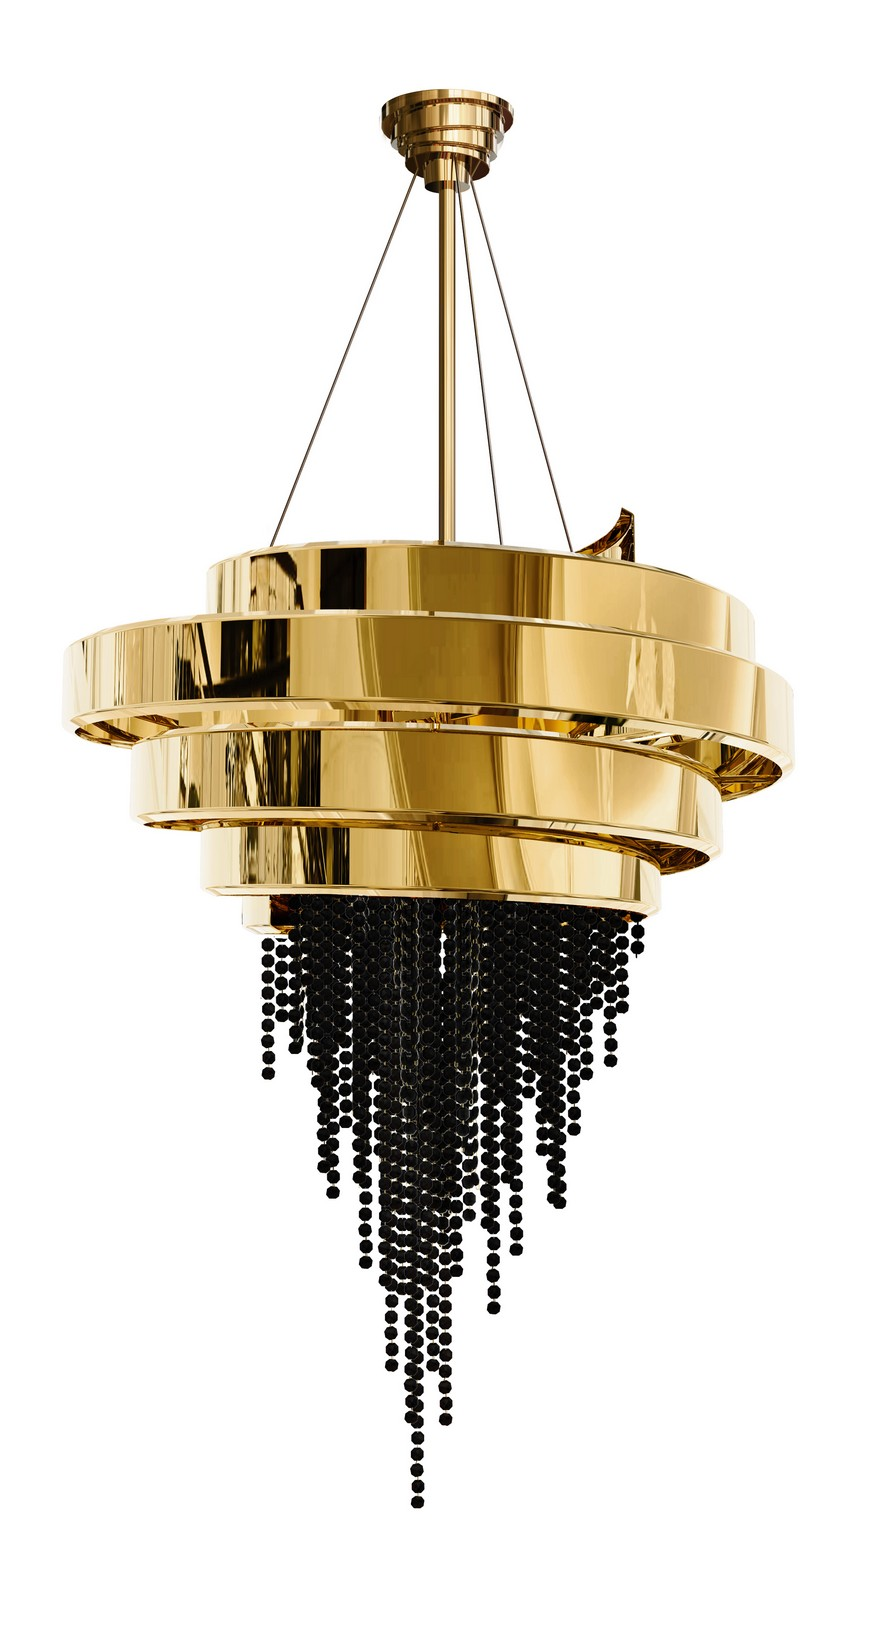 guggenheim-chandelier-01 bedroom decor Remarkable Lighting Ideas to Embellish Your Bedroom Decor guggenheim chandelier 01